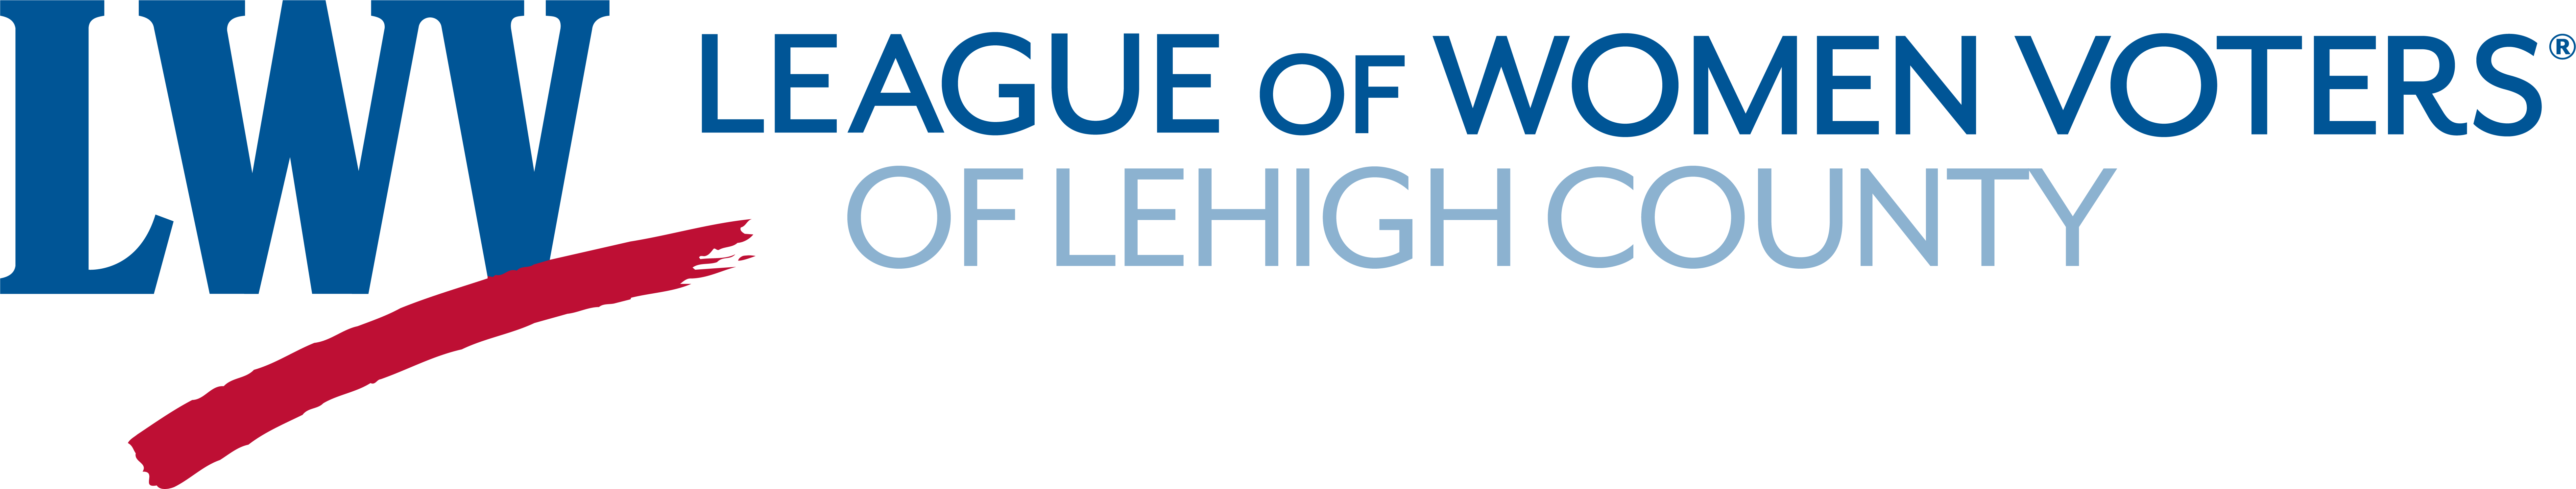 League of Women Voters Lehigh County